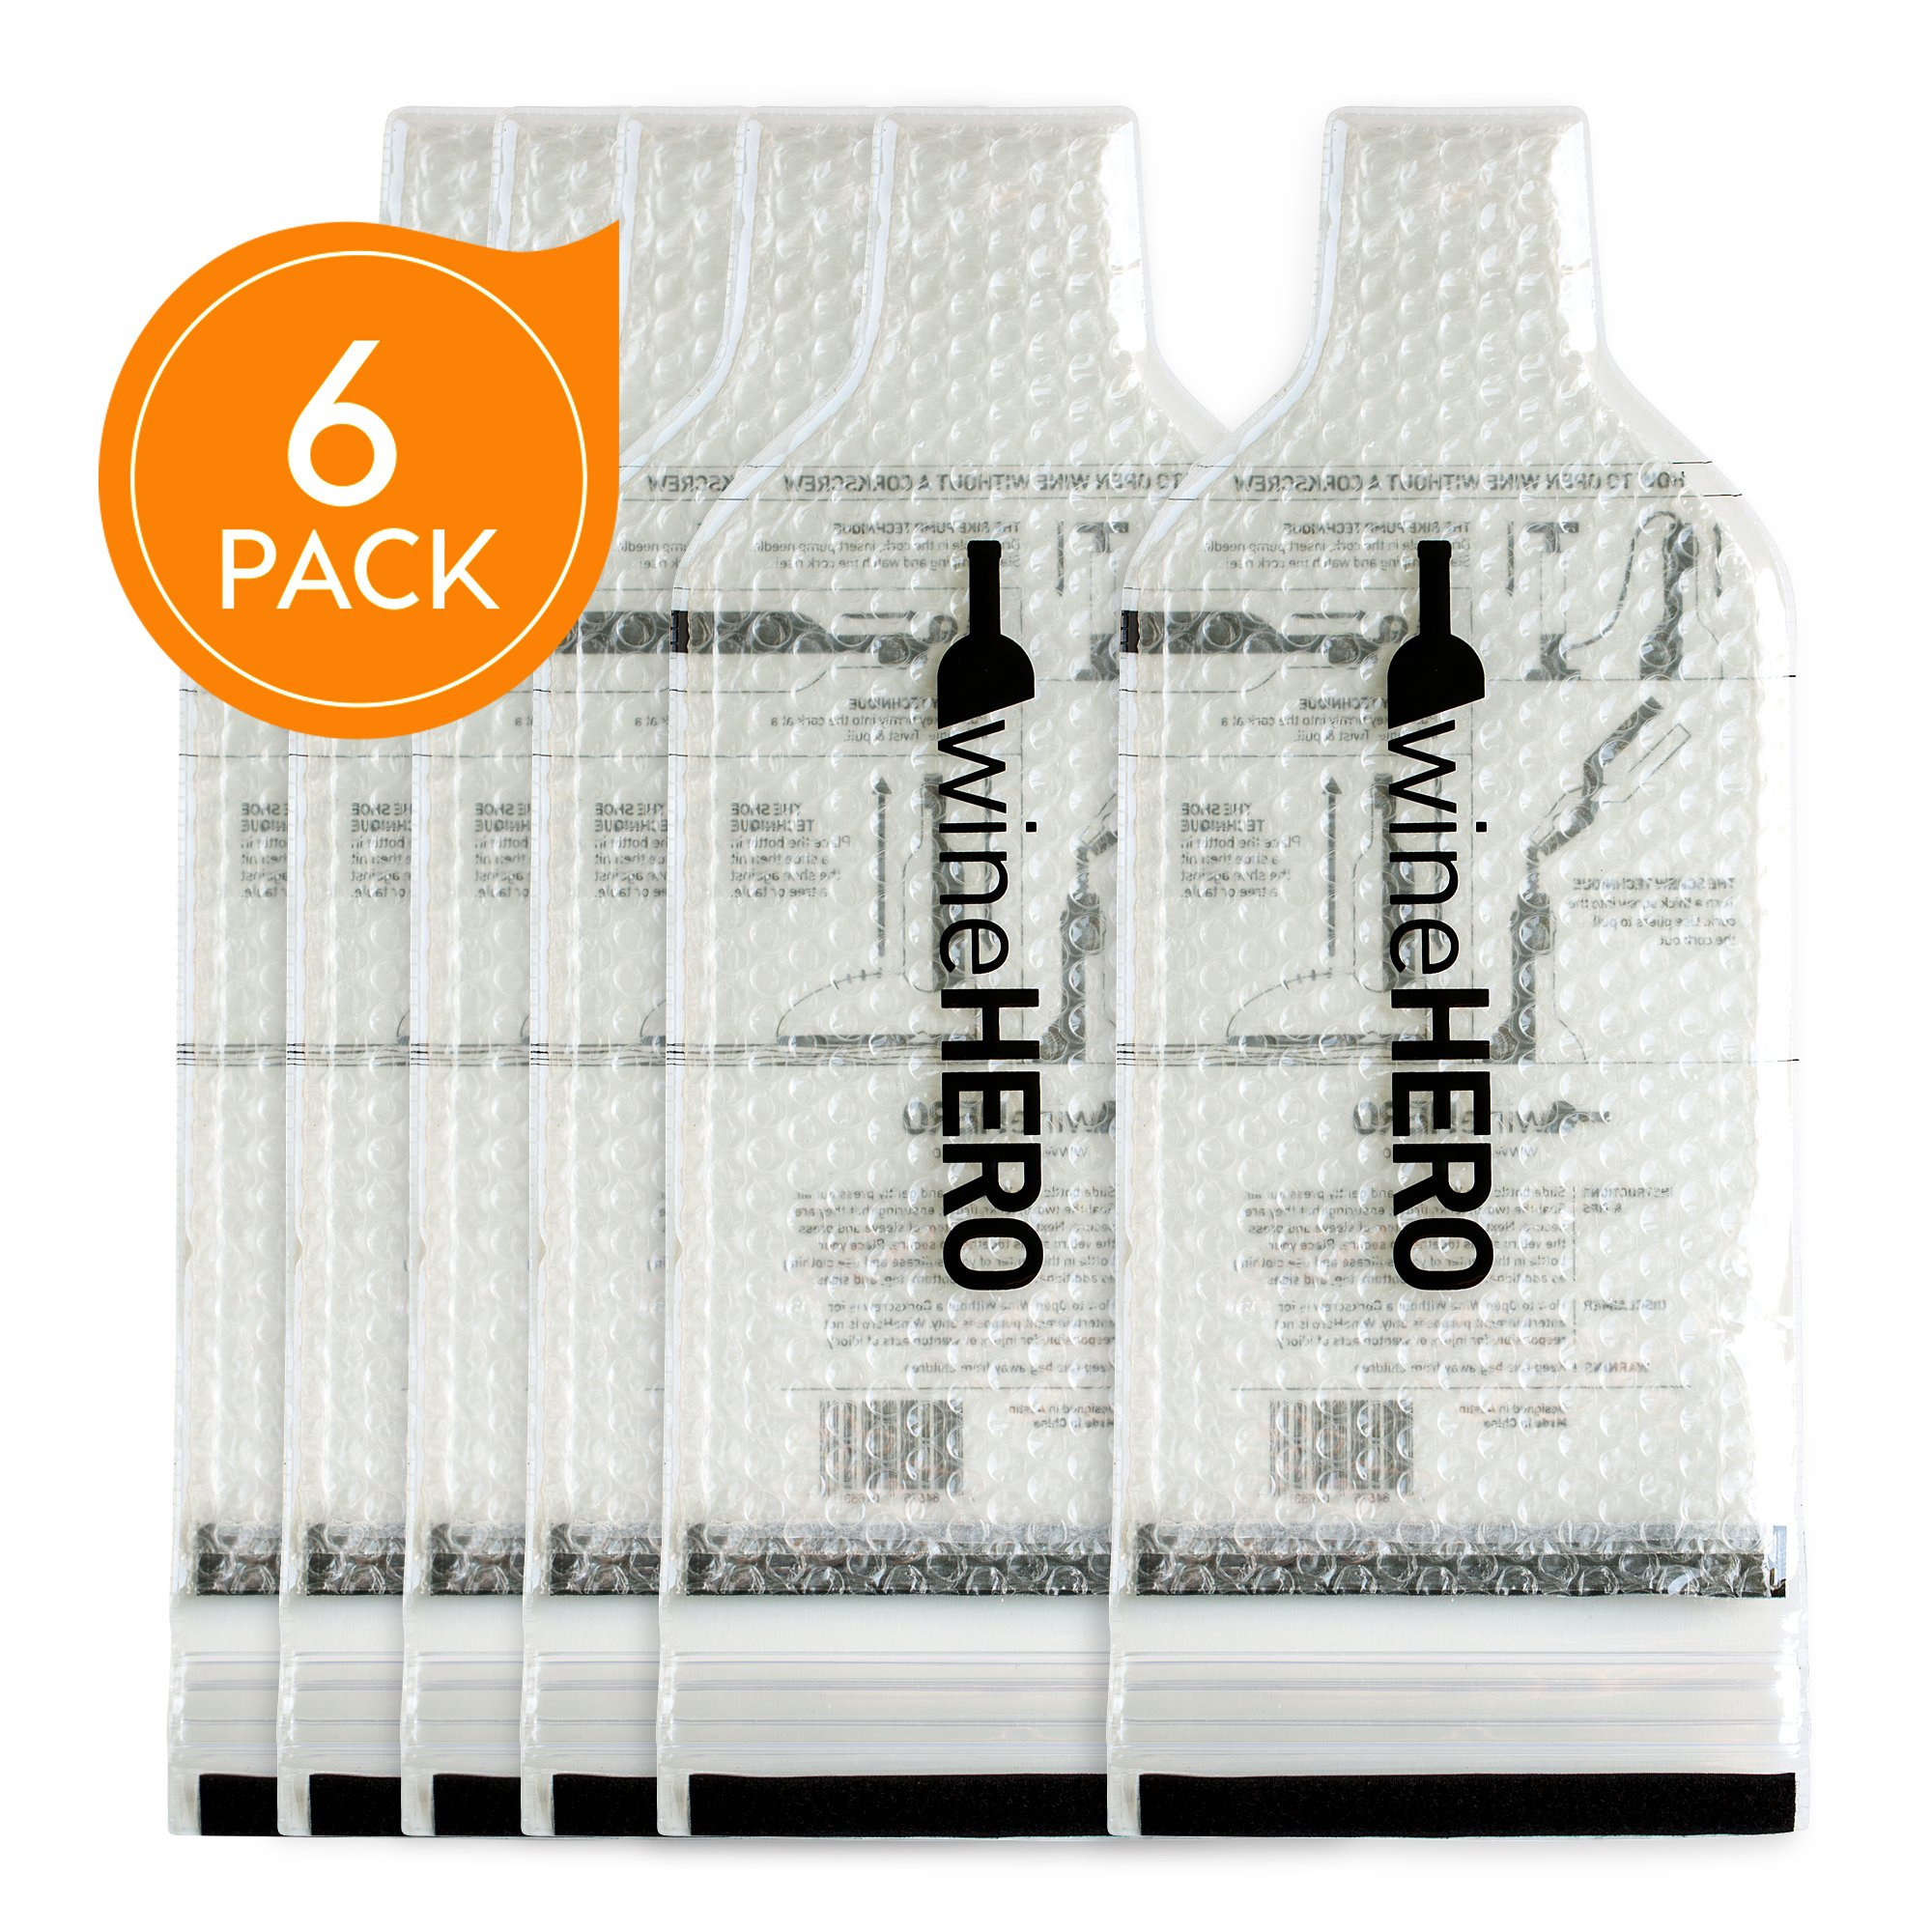 WineHero - 6 Pack Reusable Leak Proof Bottle Protector Bag for Travel Pack in Airplane Checked Baggage, Luggage, or Suitcase - Good for Cruise Travel - Wine Travel Accessory by WINEHEAD